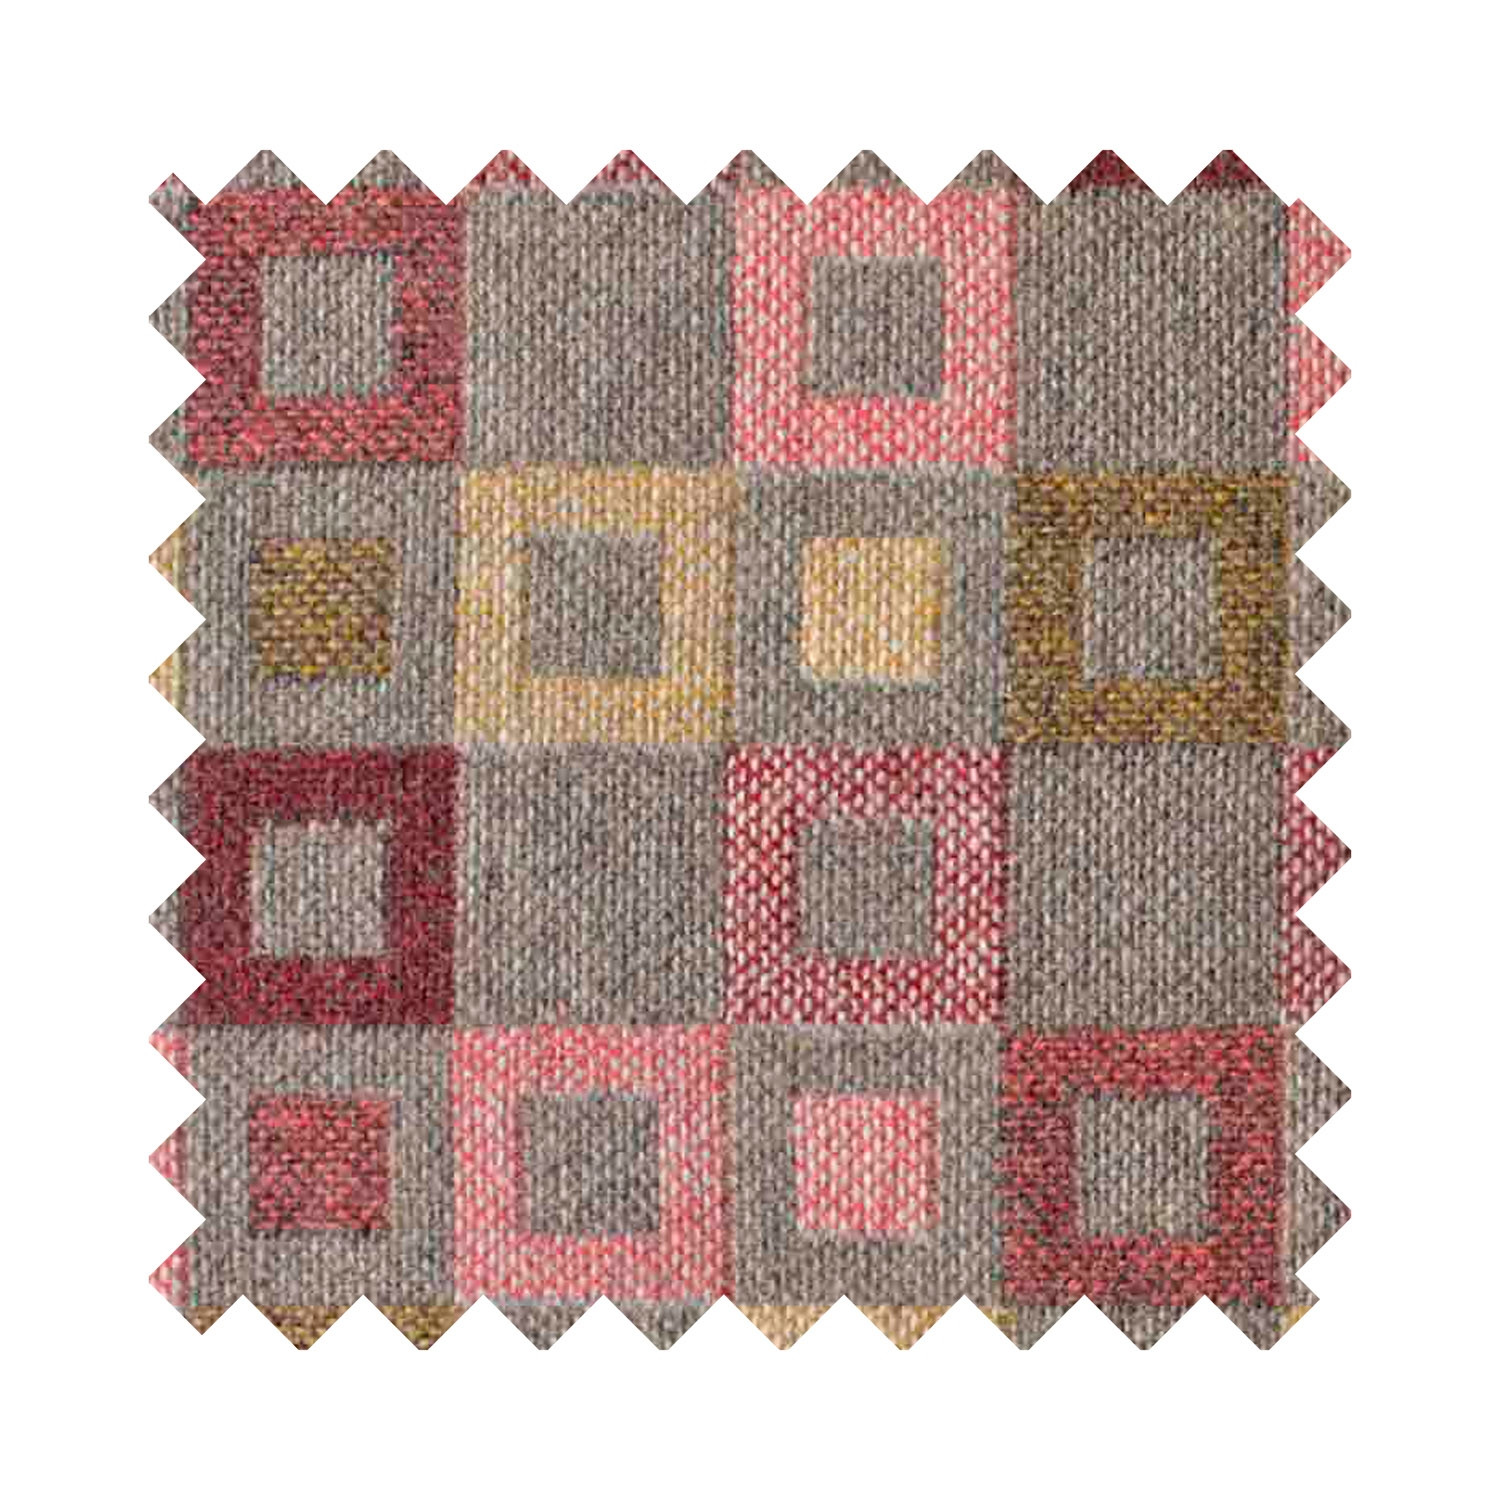 Madison copper sample swatch